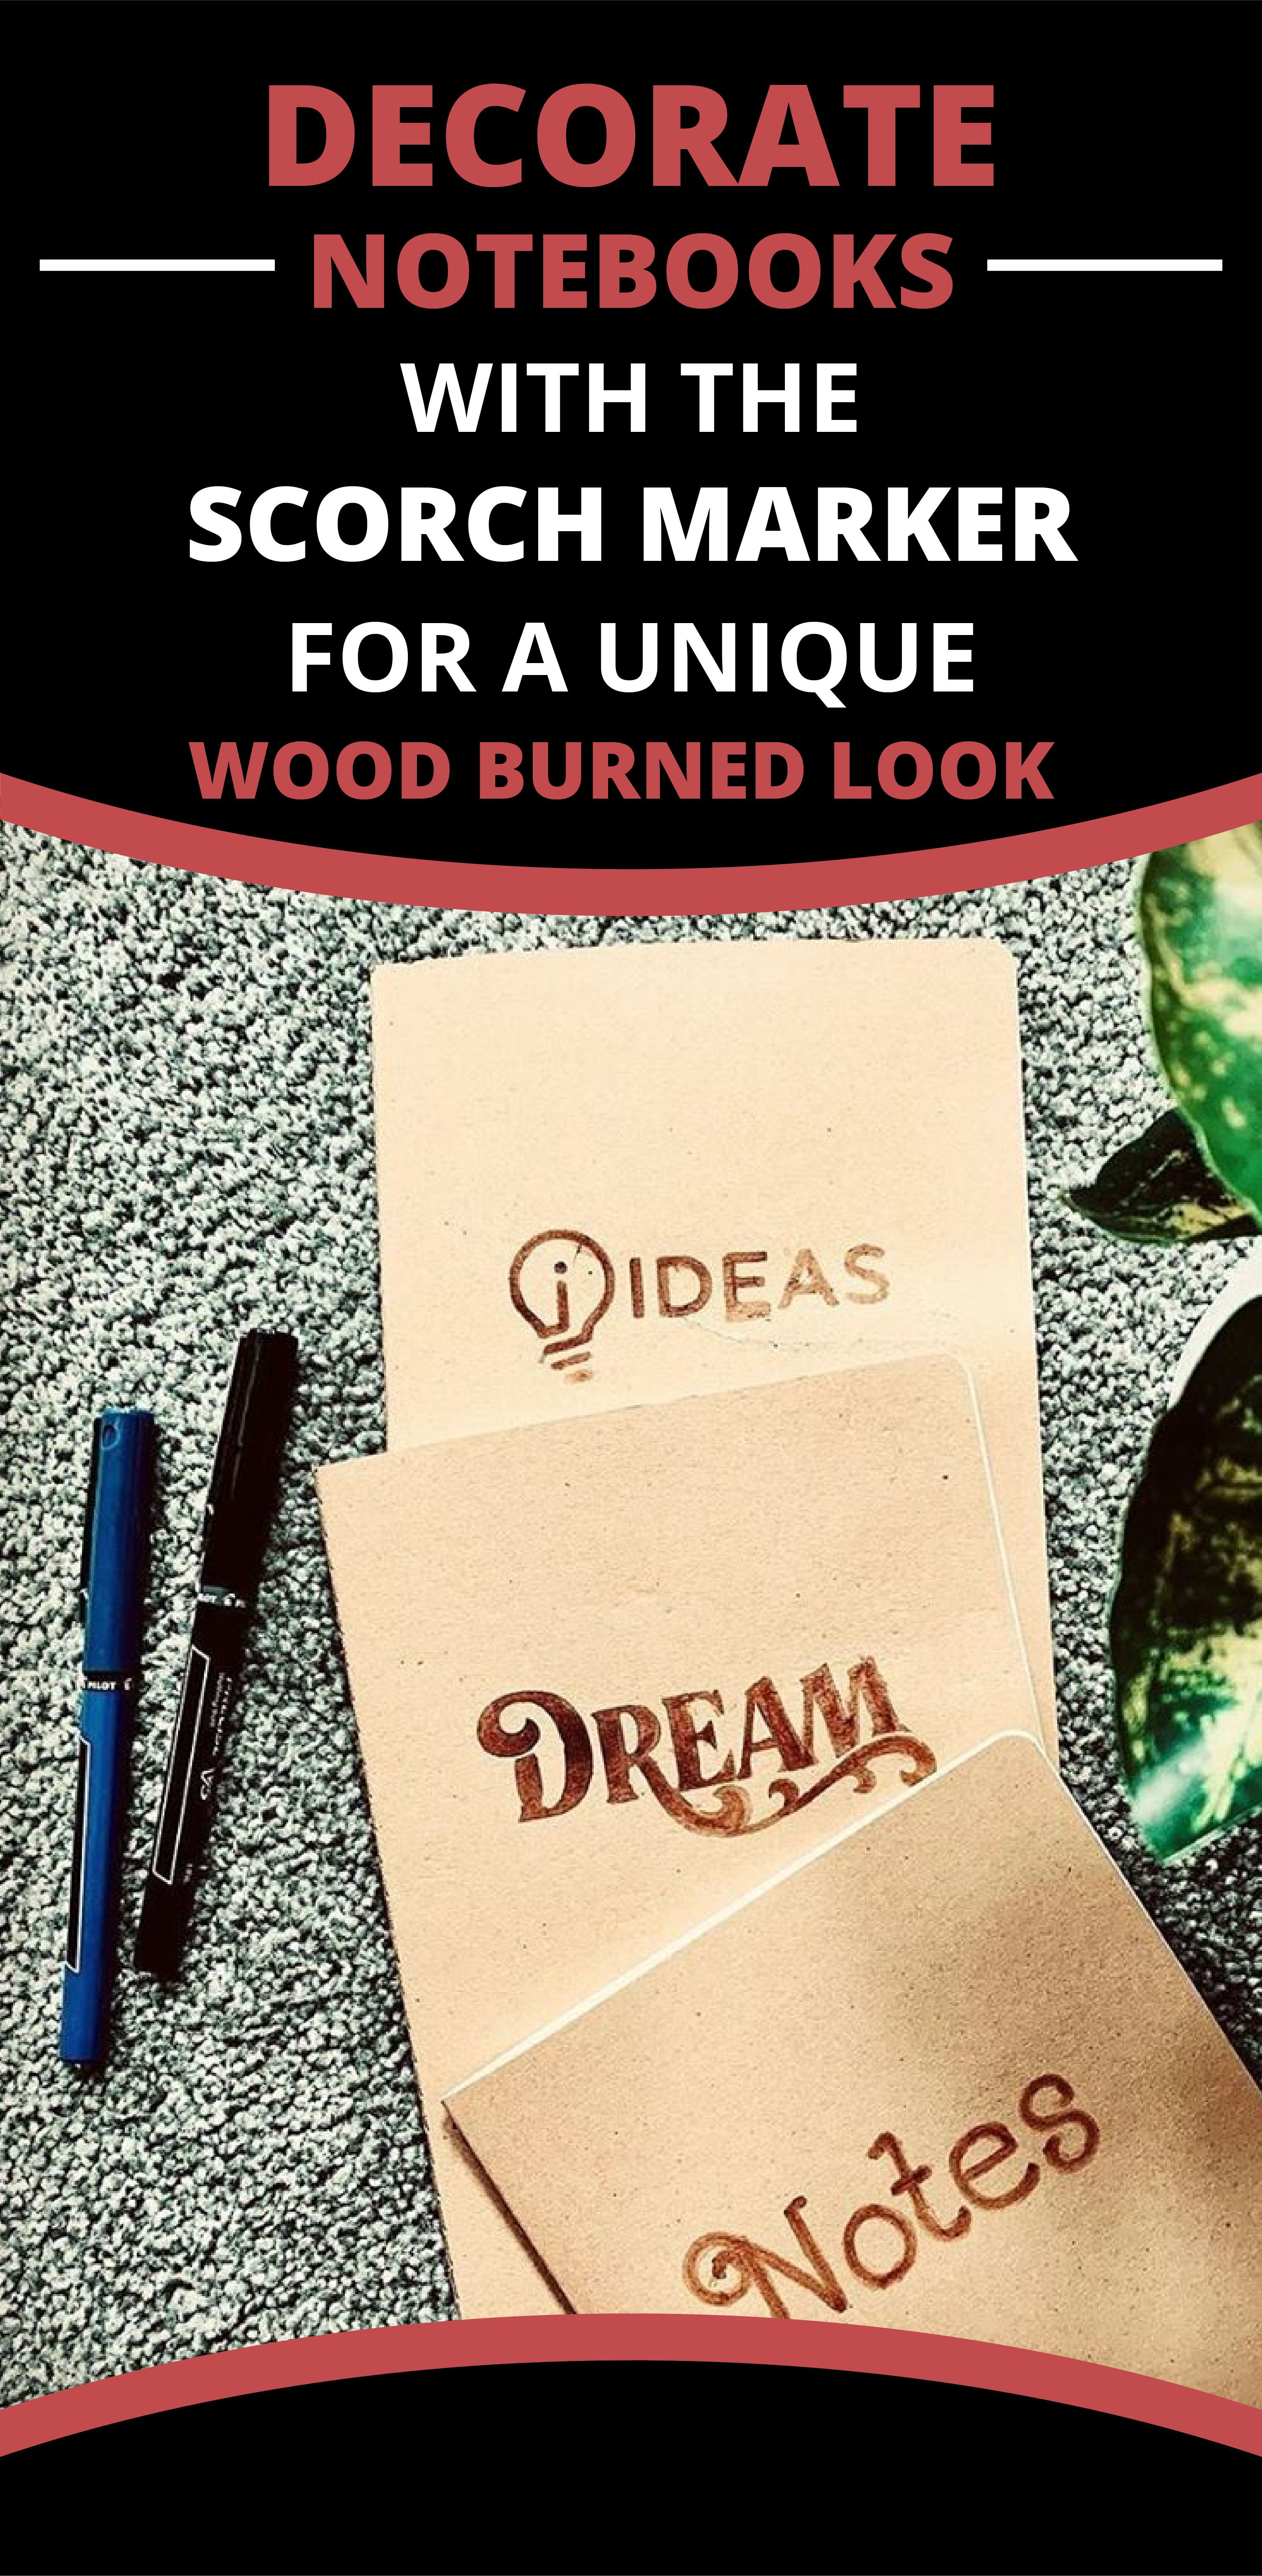 Decorate Notebooks With The Scorch Marker For A Unique Wood Burned Look Wood Crafts Diy Wood Crafts Wood Burning Pen